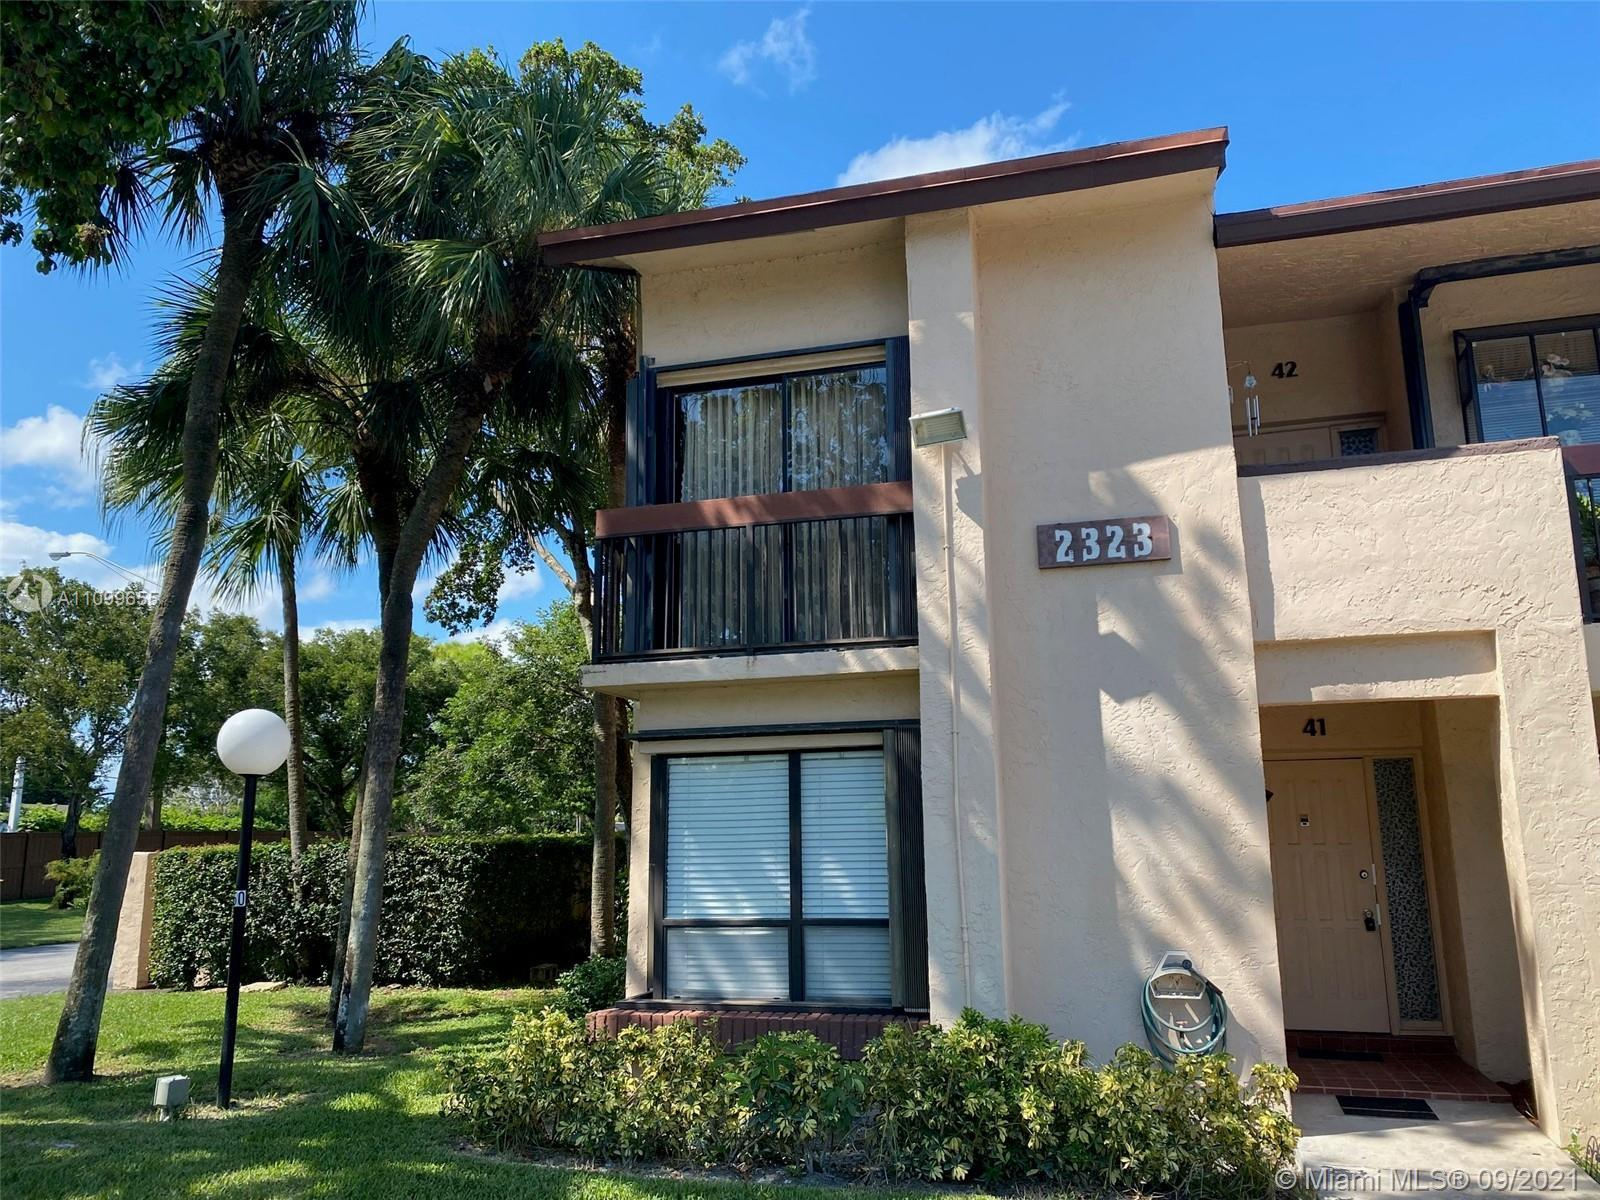 New excellent complete upgraded condo 2/2 in 1st floor (corner unit) with new beautiful bathrooms &